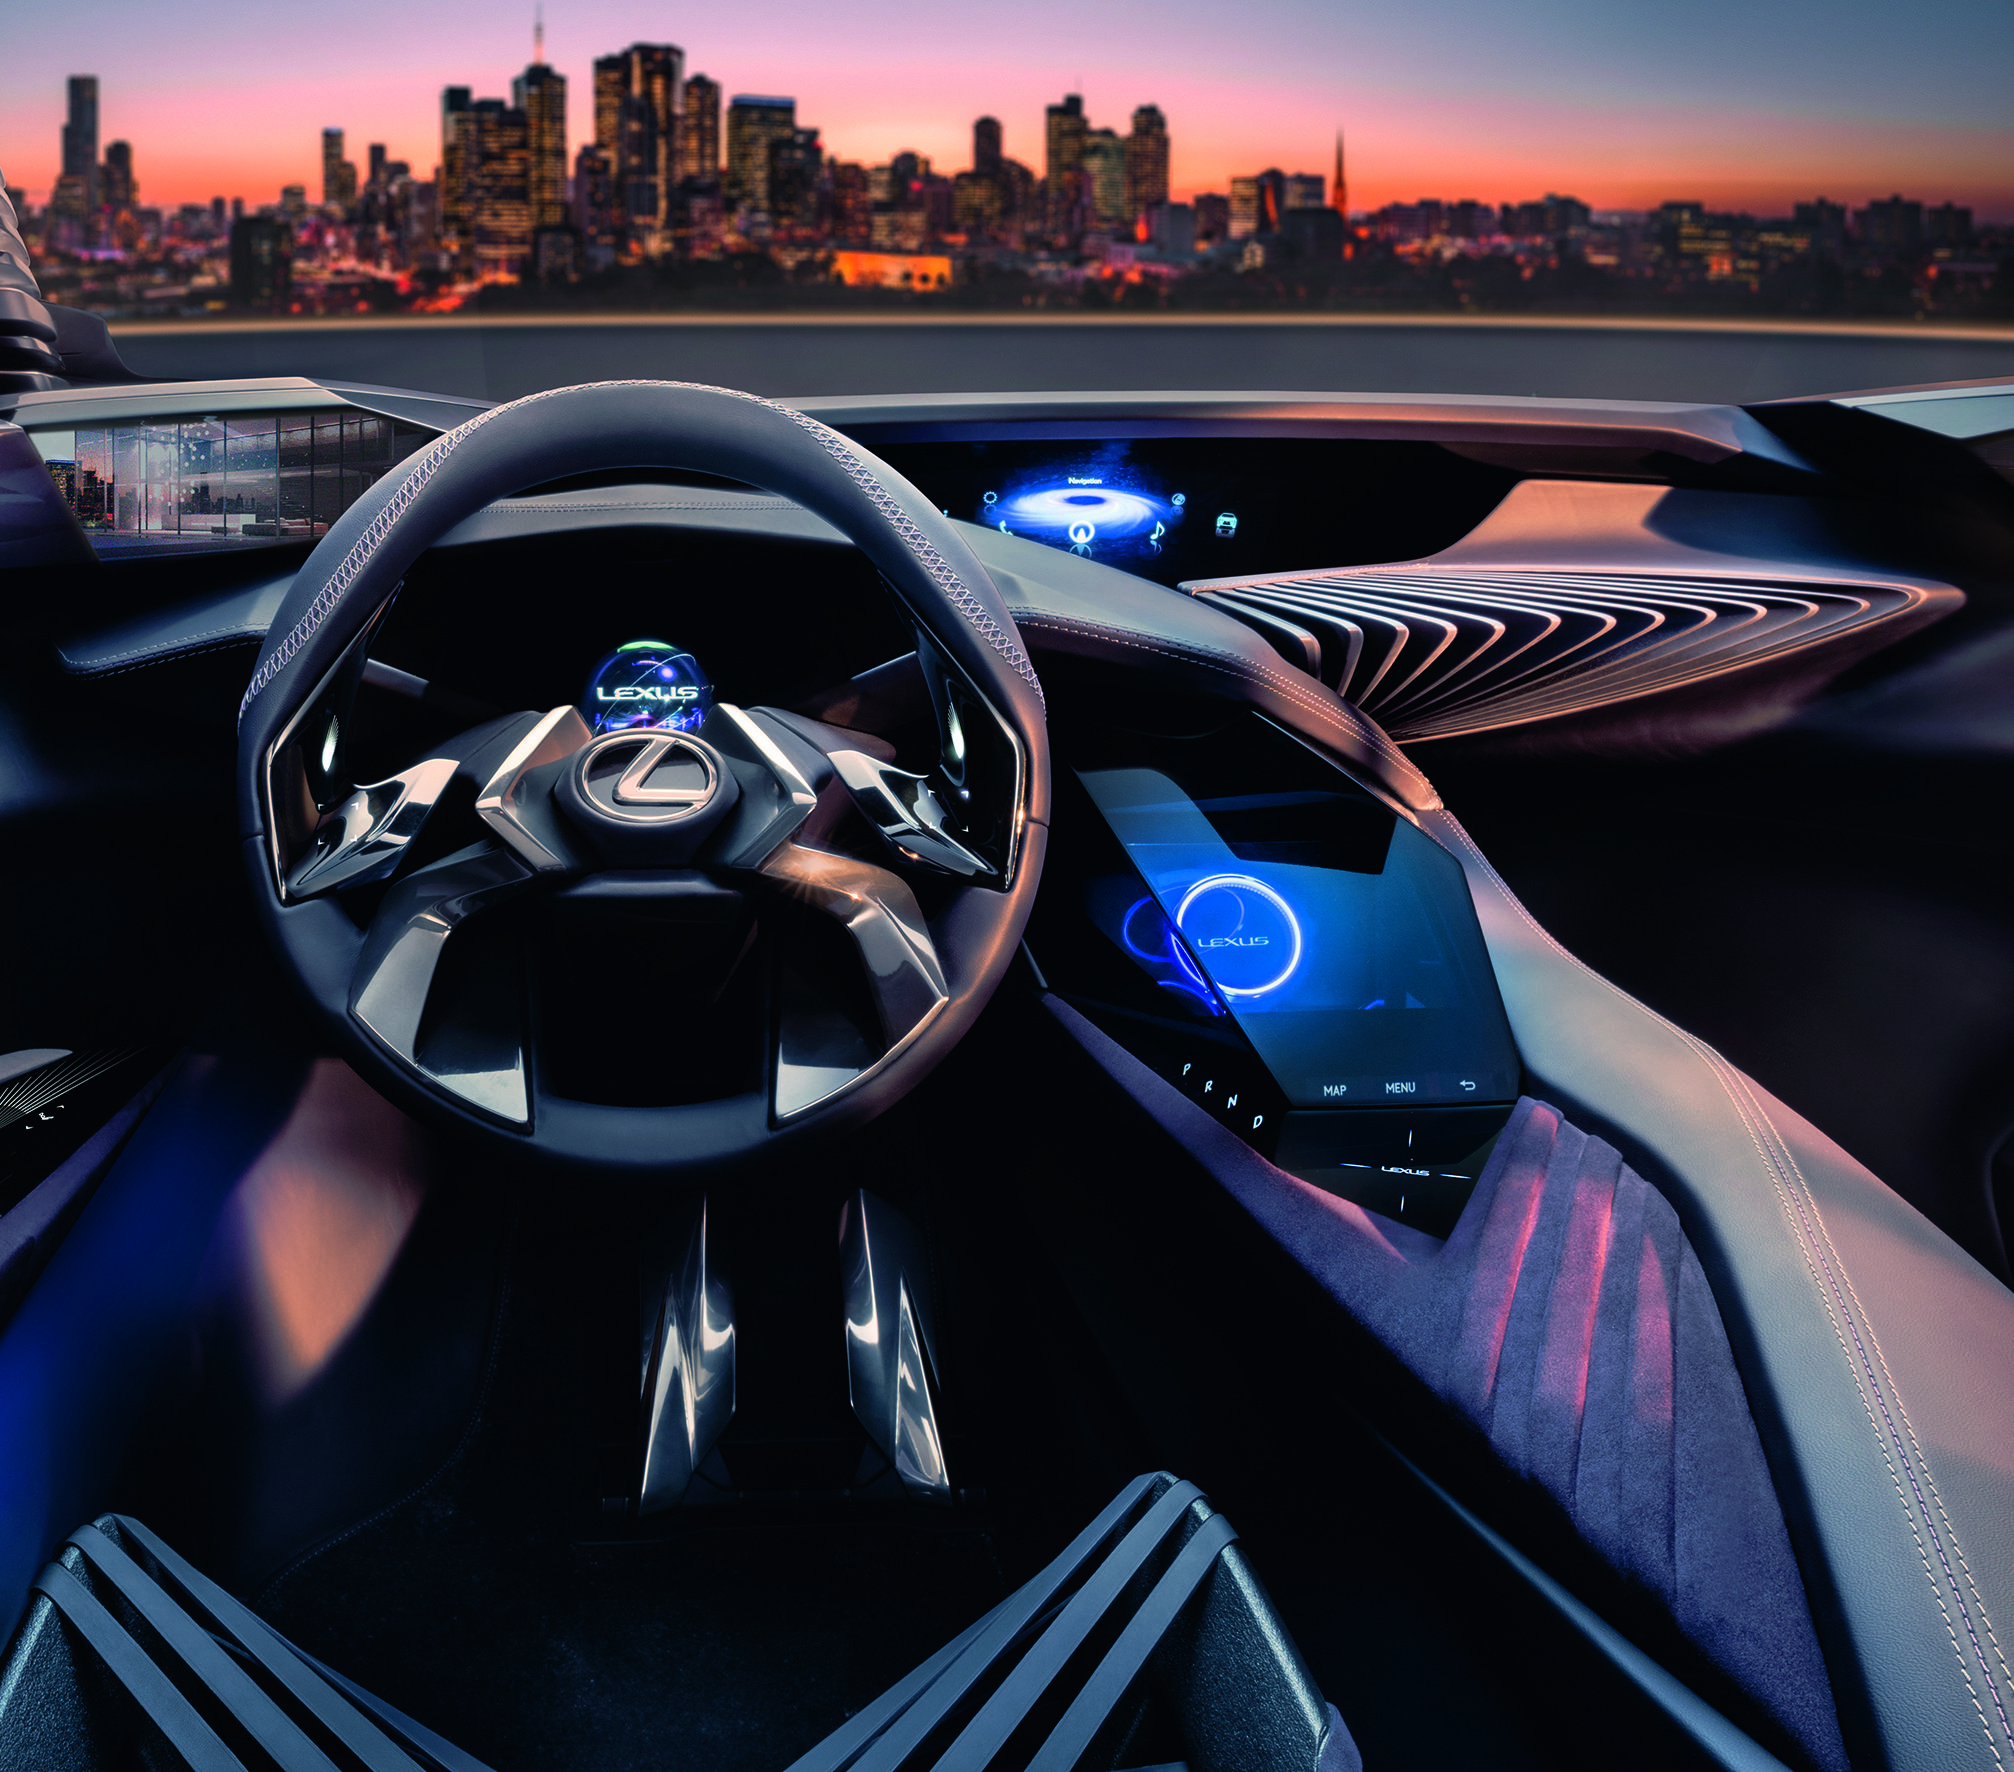 Deconstruction By Design Is The Principle Most Powerfully Represented In The Lexus Ux Concept S Main Cabin In Concept Cars Lexus Cars Futuristic Cars Interior